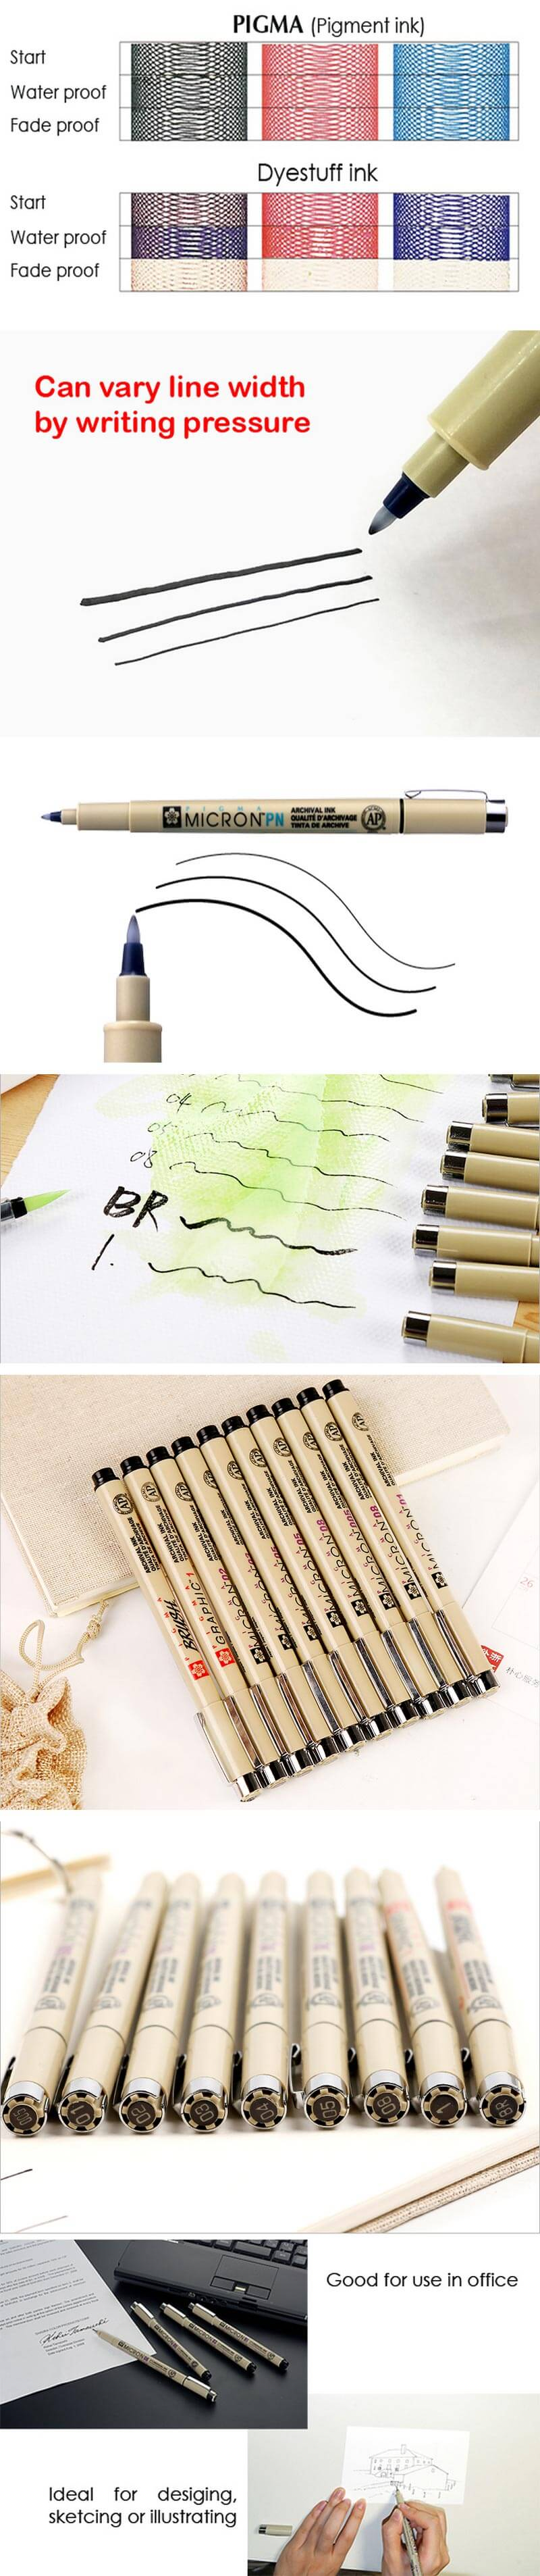 Sakura Pigma Micron Ultra-fine Brush Ink Pen - drawing